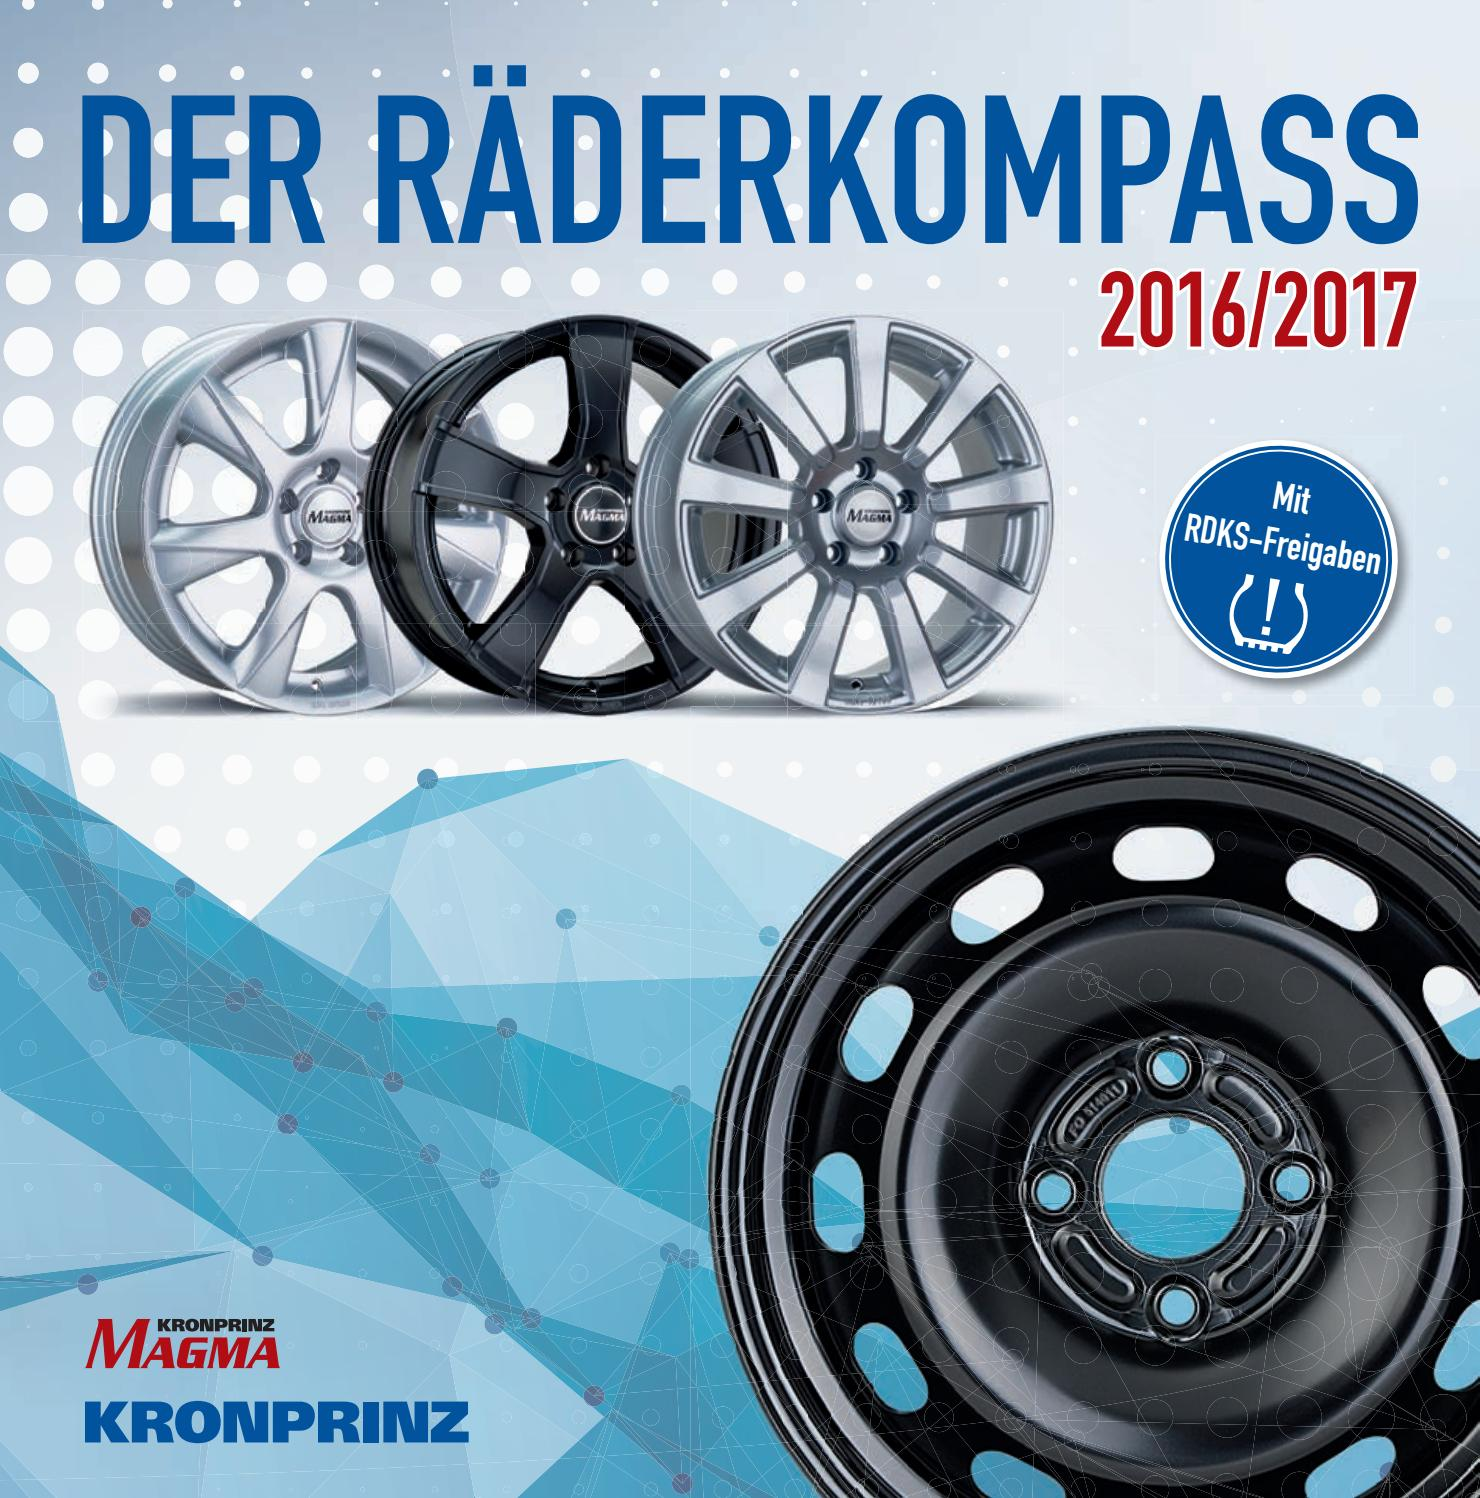 Räderkompass 2016 2017 by Hertel Group issuu